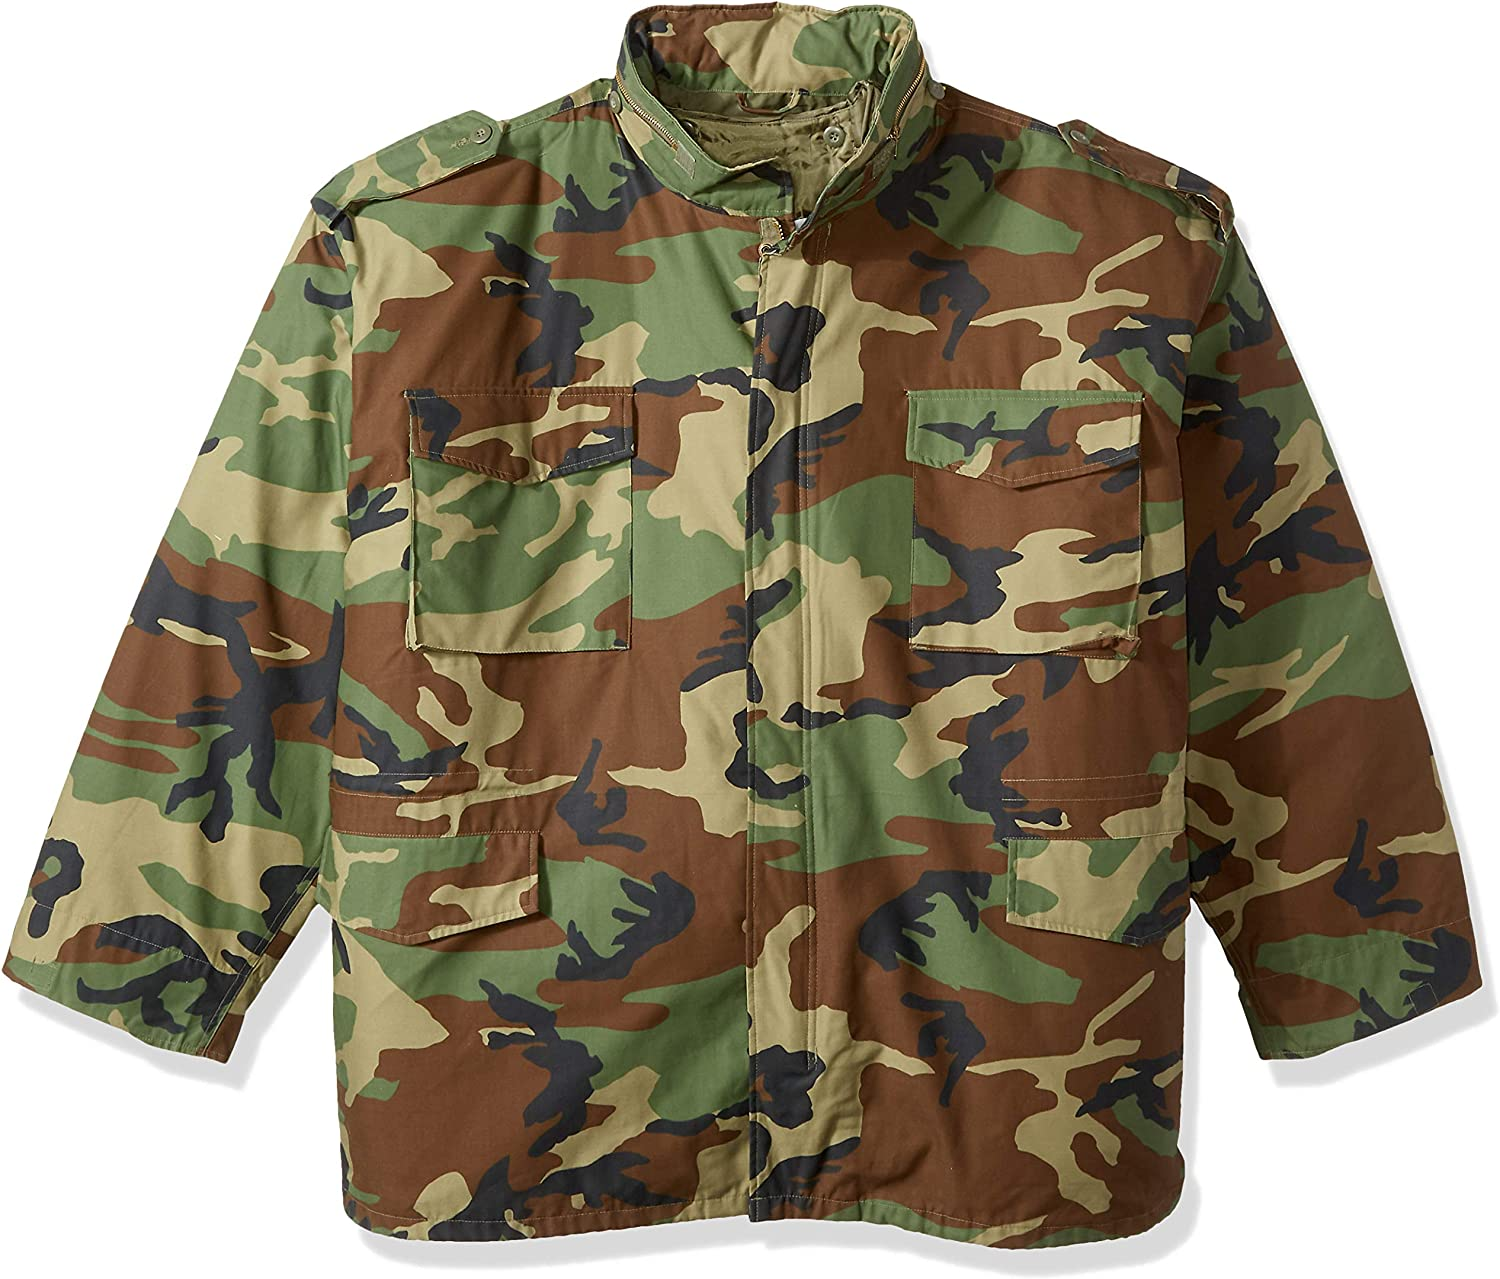 Rothco Camo M-65 Field Jacket Camouflage unisex Military Jac Same day shipping